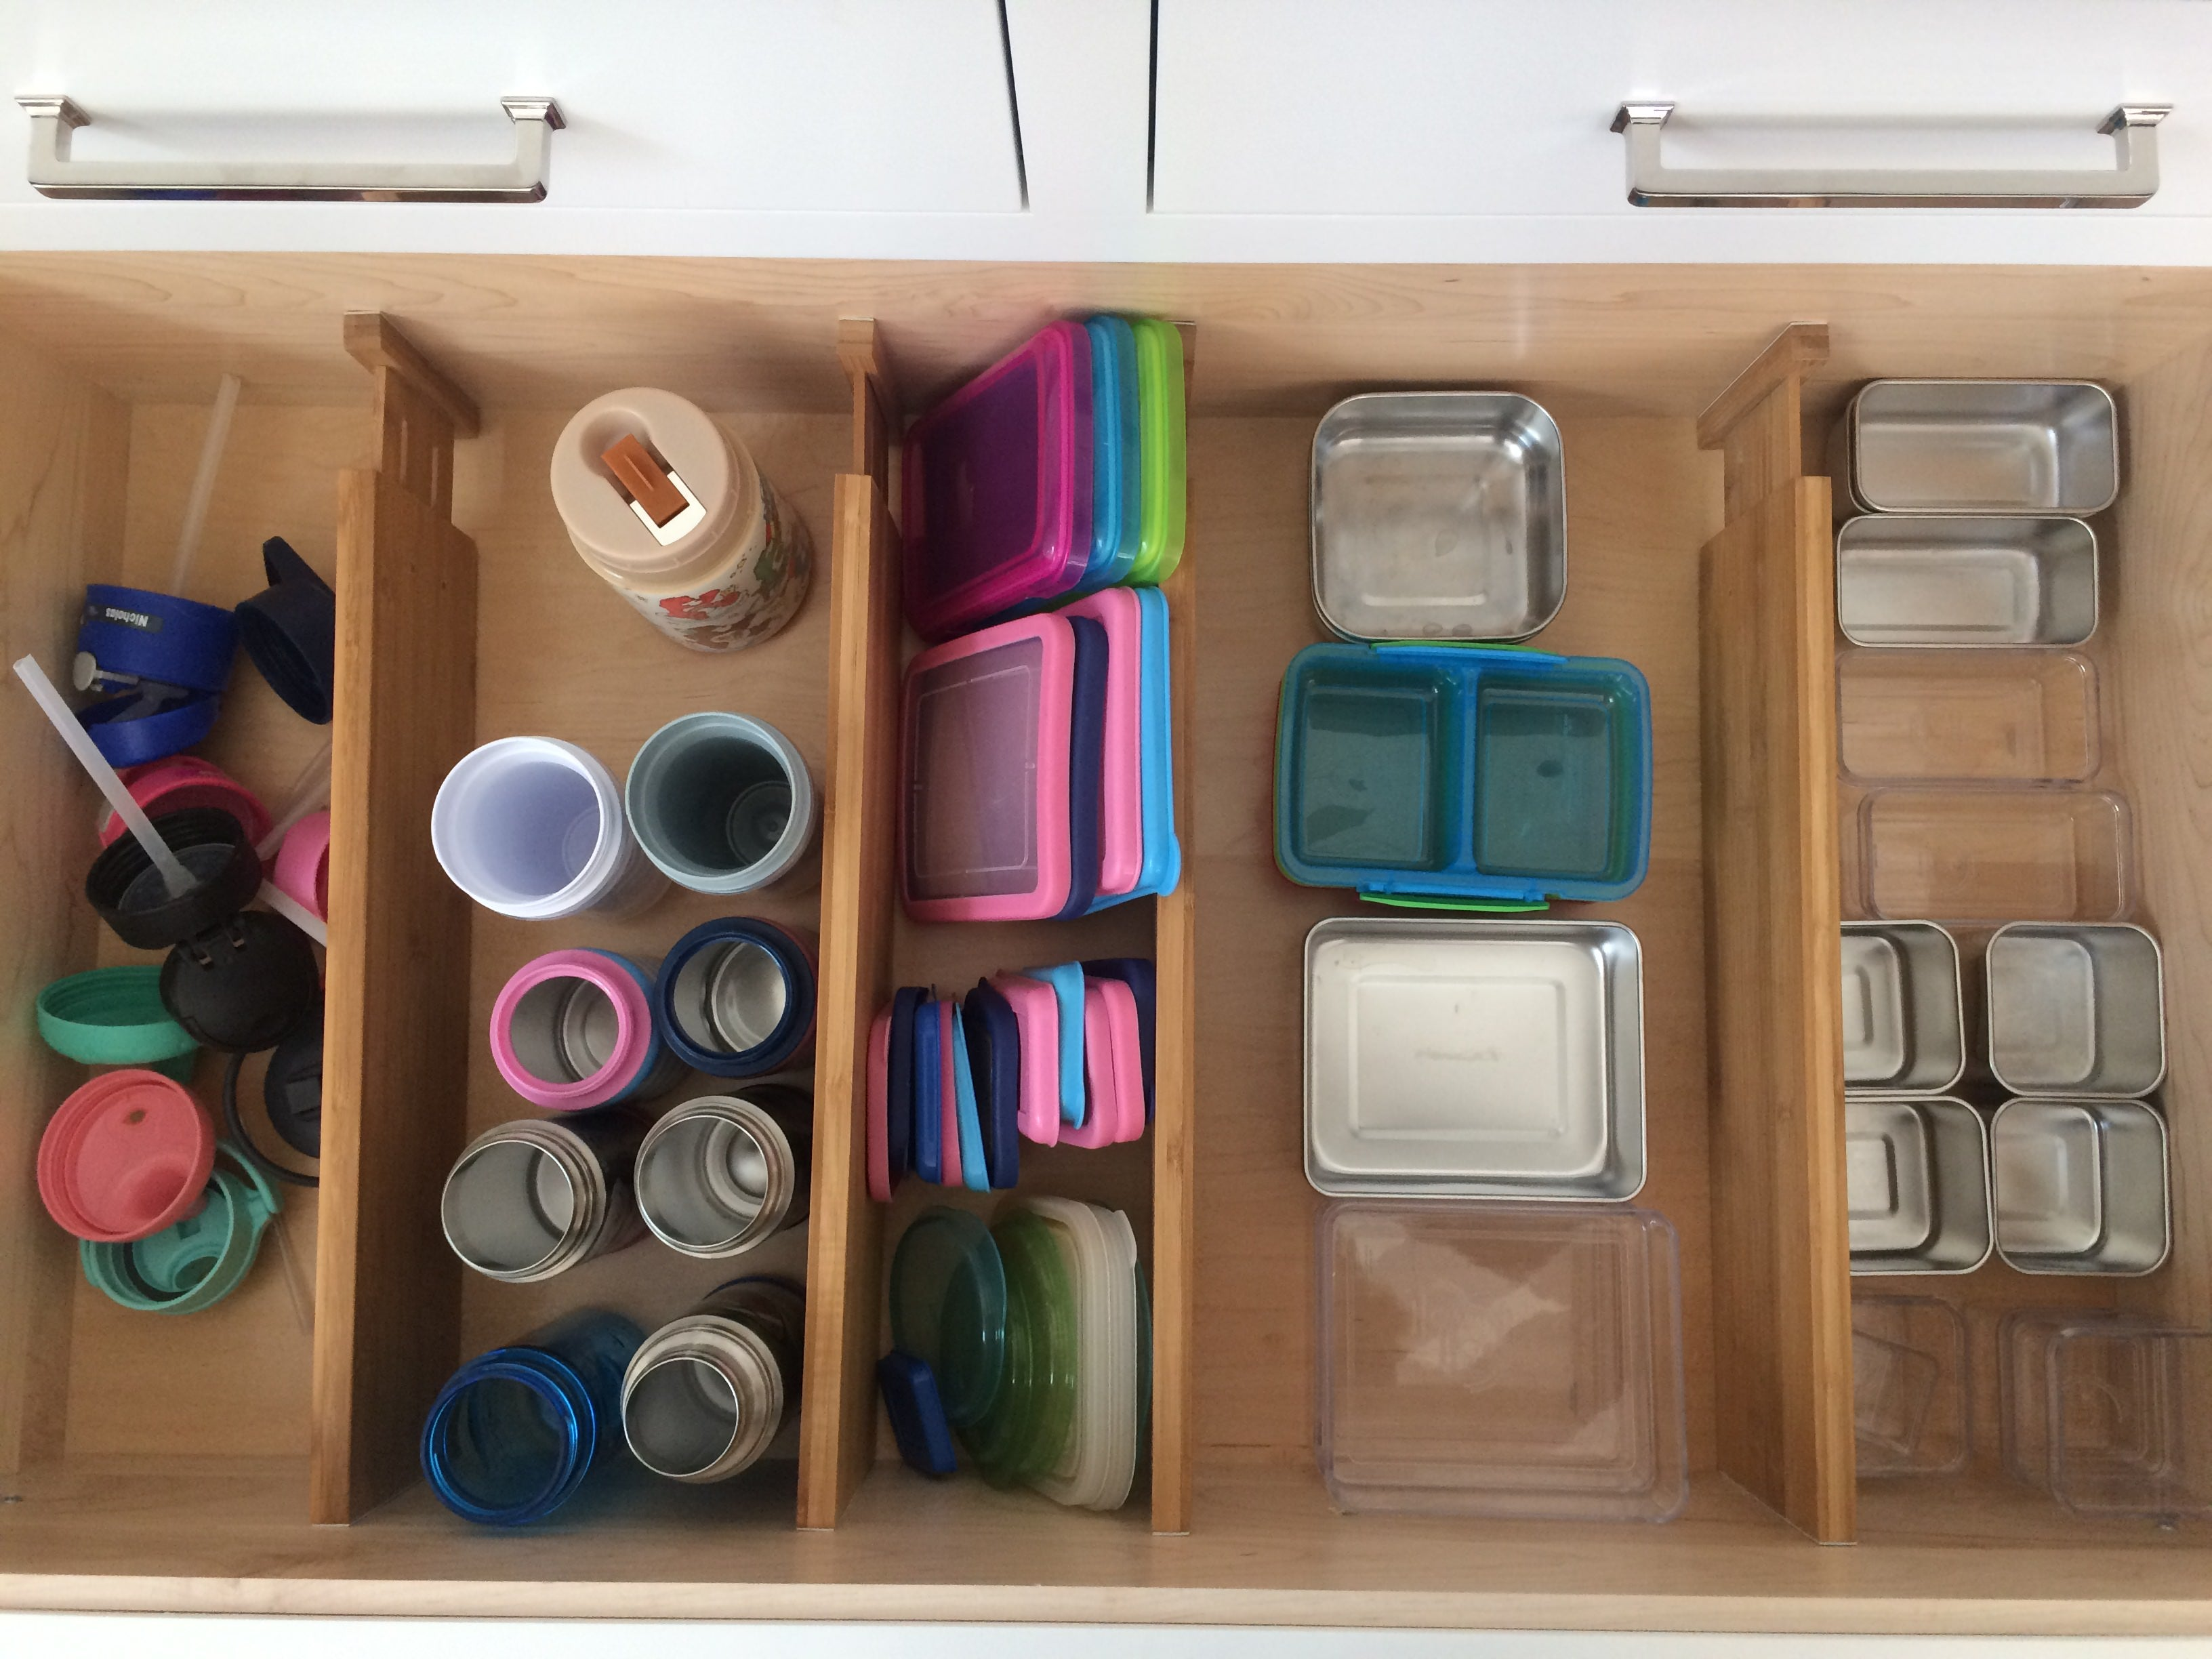 makeup storage, san francisco, home organizer san francisco, acrylic trays, acrylic storage, bathroom inspiration, kitchen inspiration, storage ideas, kitchen storage, bathroom storage, closet inspiration, lisa ruff